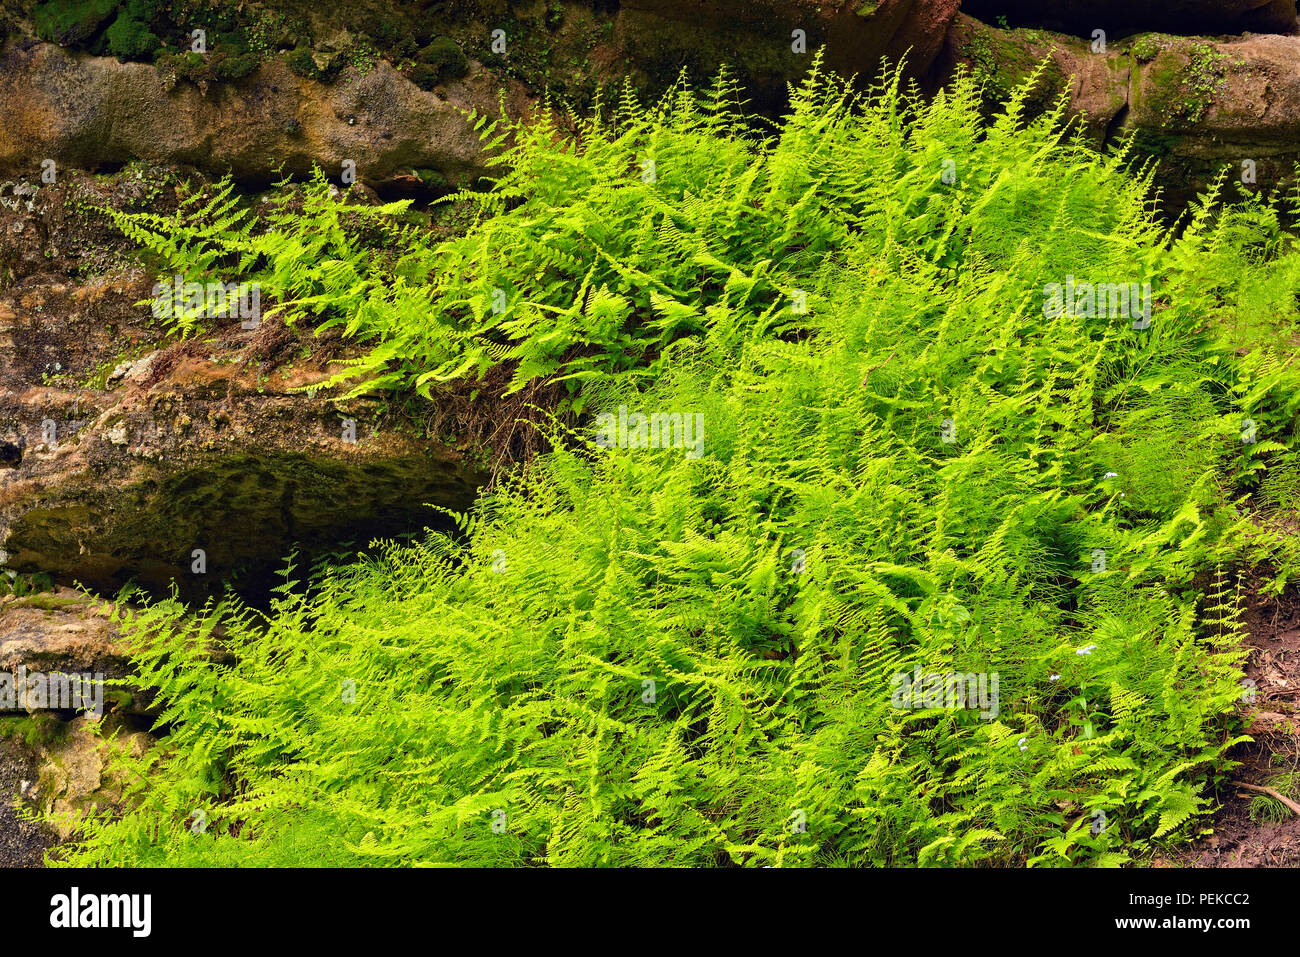 Wood ferns growing on sandstone rock walls in the Tannery Creek canyon, Alger County, near Munising, Michigan, USA Stock Photo